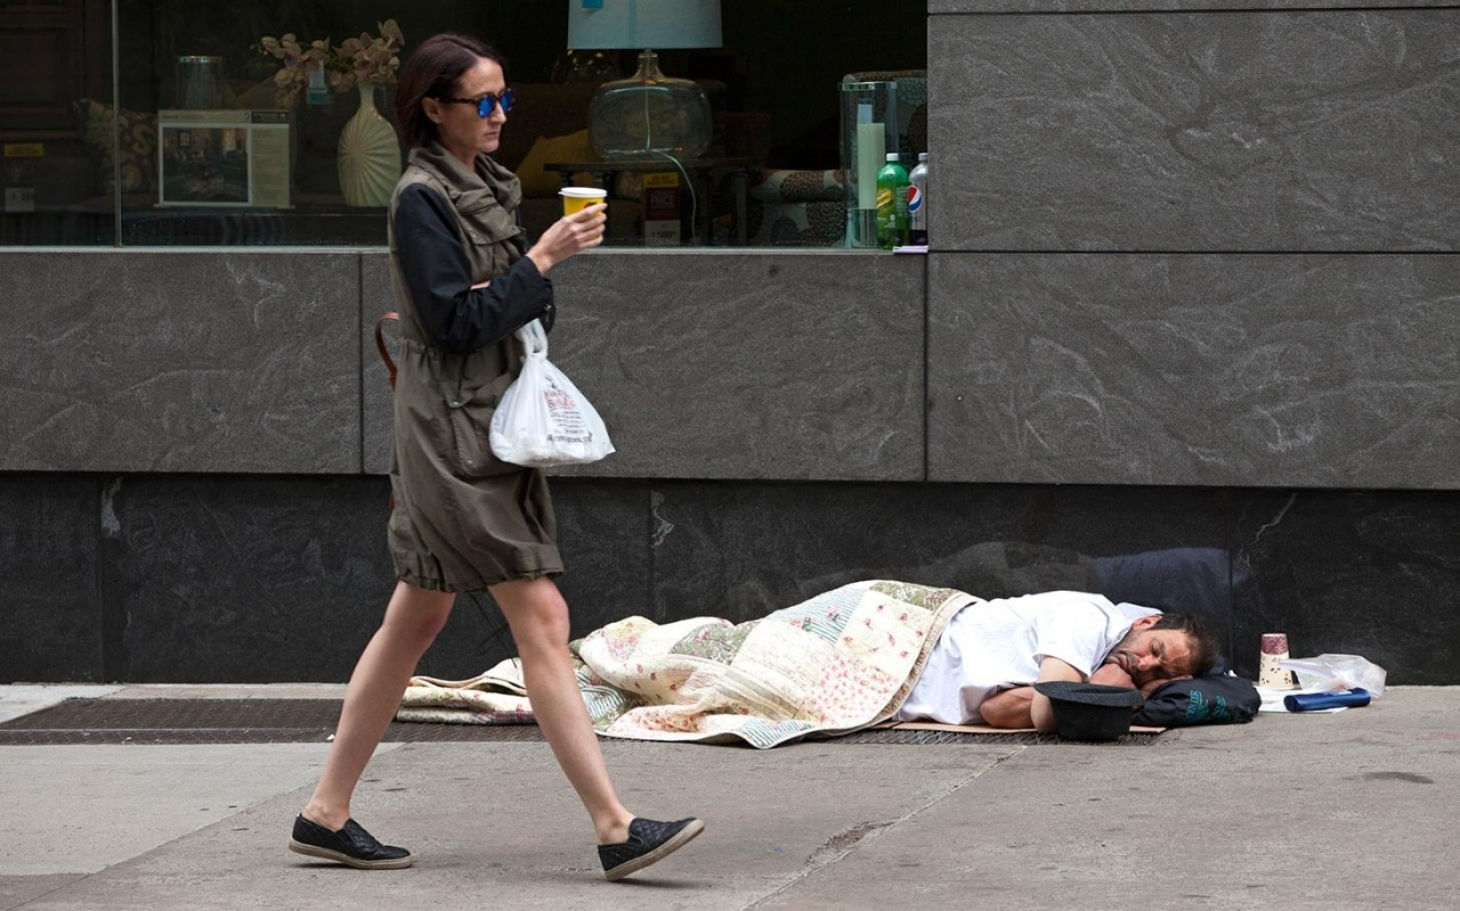 poverty in new york city Approximately one in five new yorkers lives in poverty and nearly half the city's households are considered near poor employment data and the city's food banks tell us that the number of working poor continues to rise.